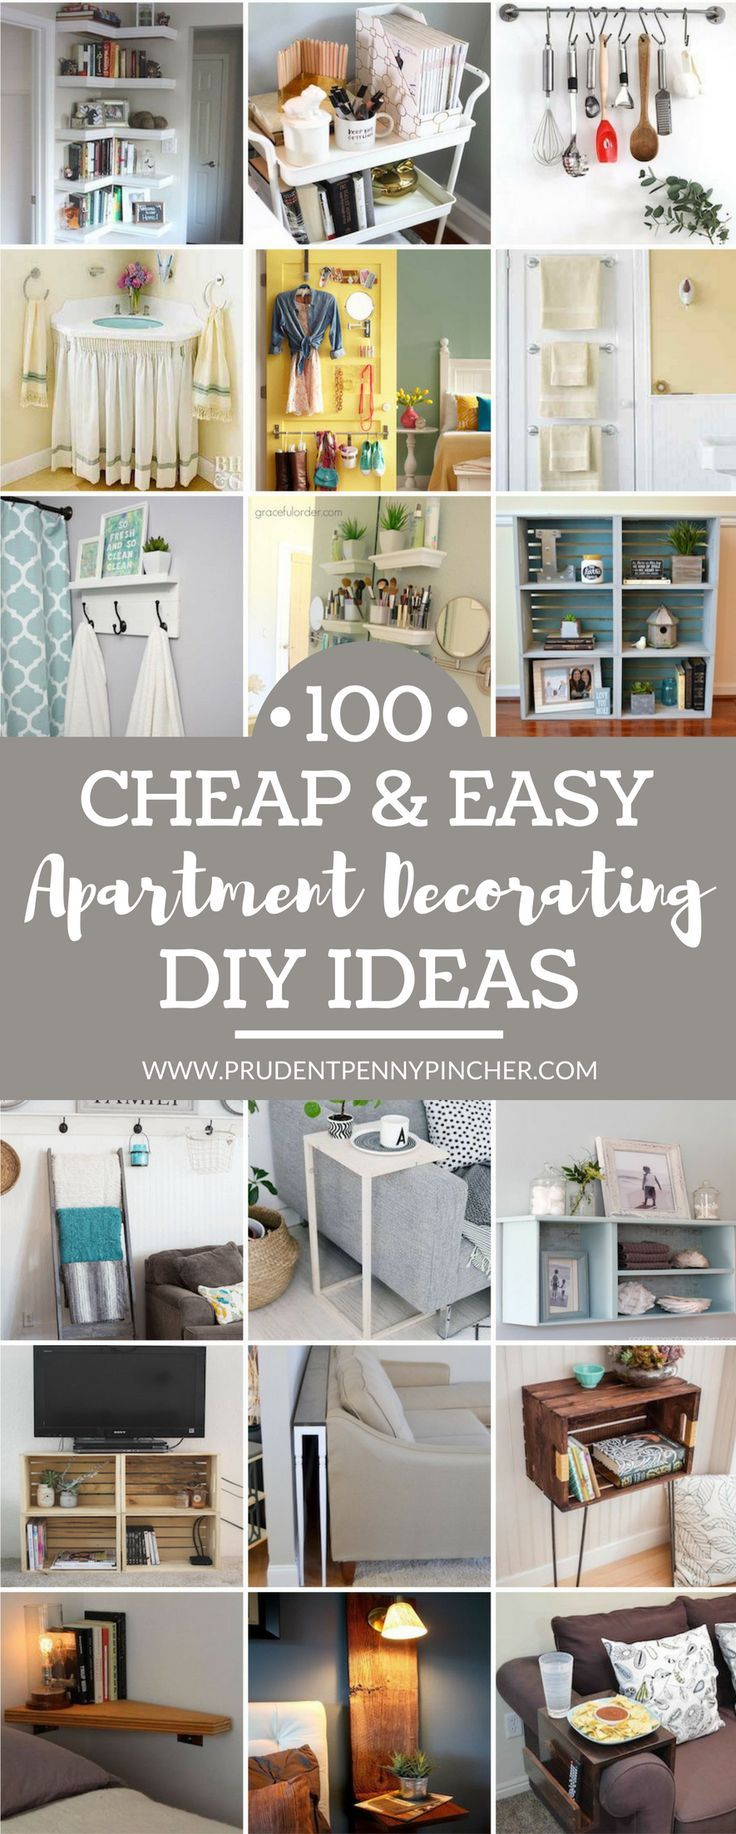 100 Cheap and Easy DIY Apartment Decorating Ideas | Selbstgemachtes ...